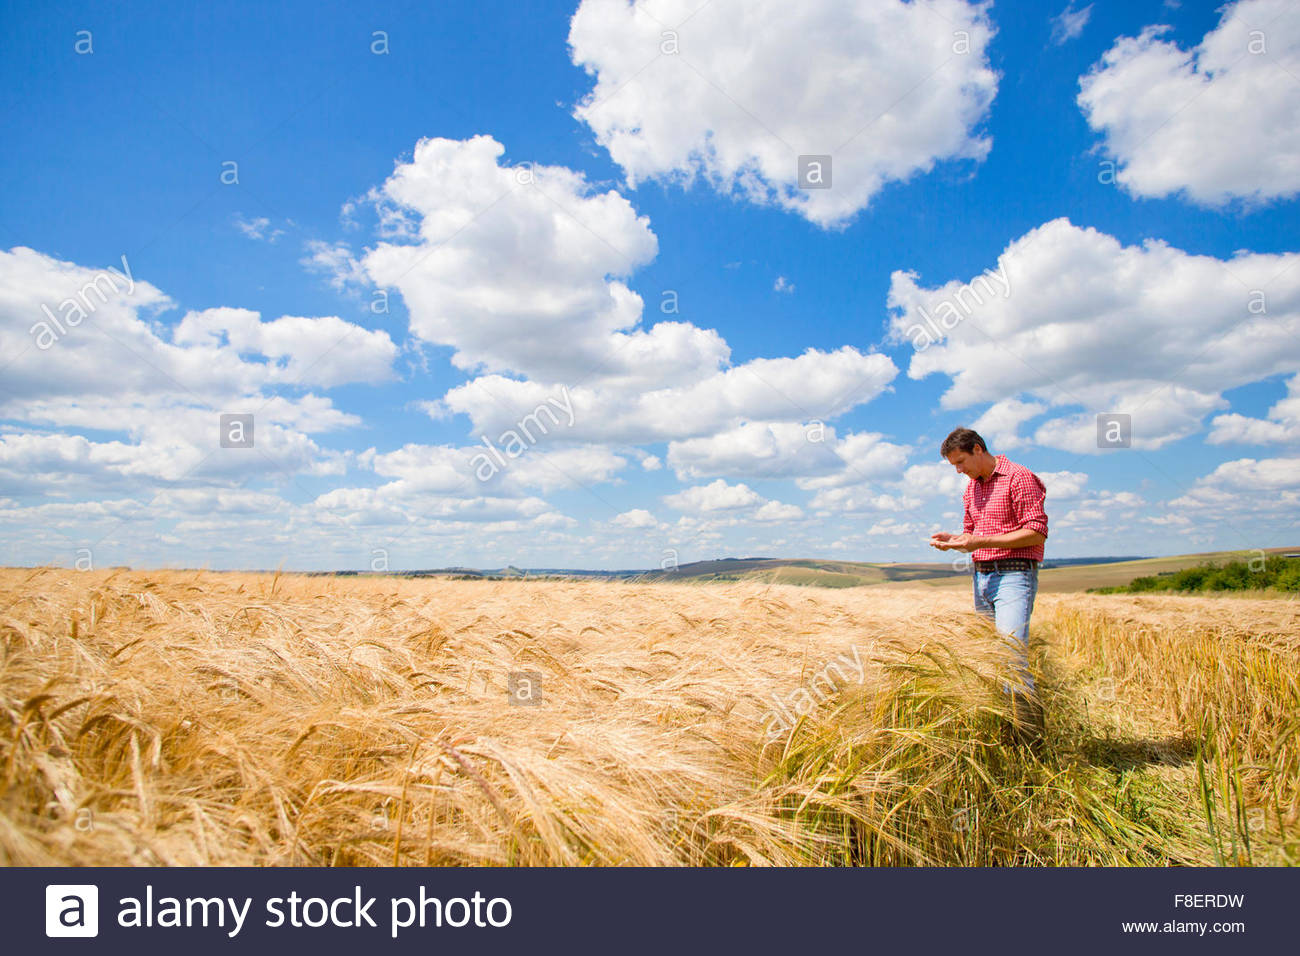 Farmer examining sunny rural barley crop field in summer - Stock Image